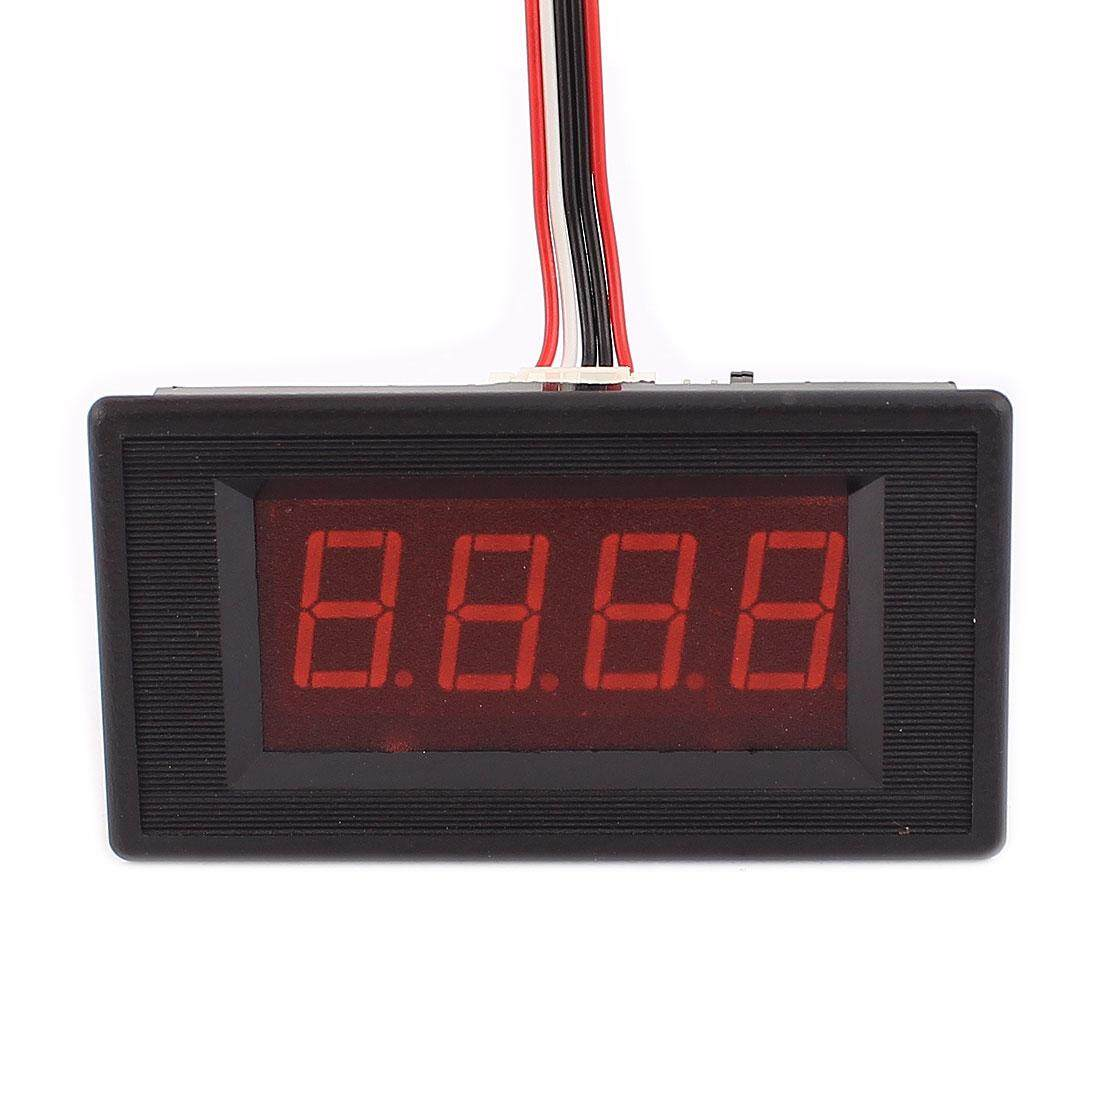 AXA AXA Digital Ammeter DC 30A 75MV Current Meter LED Display Panel Current Tester